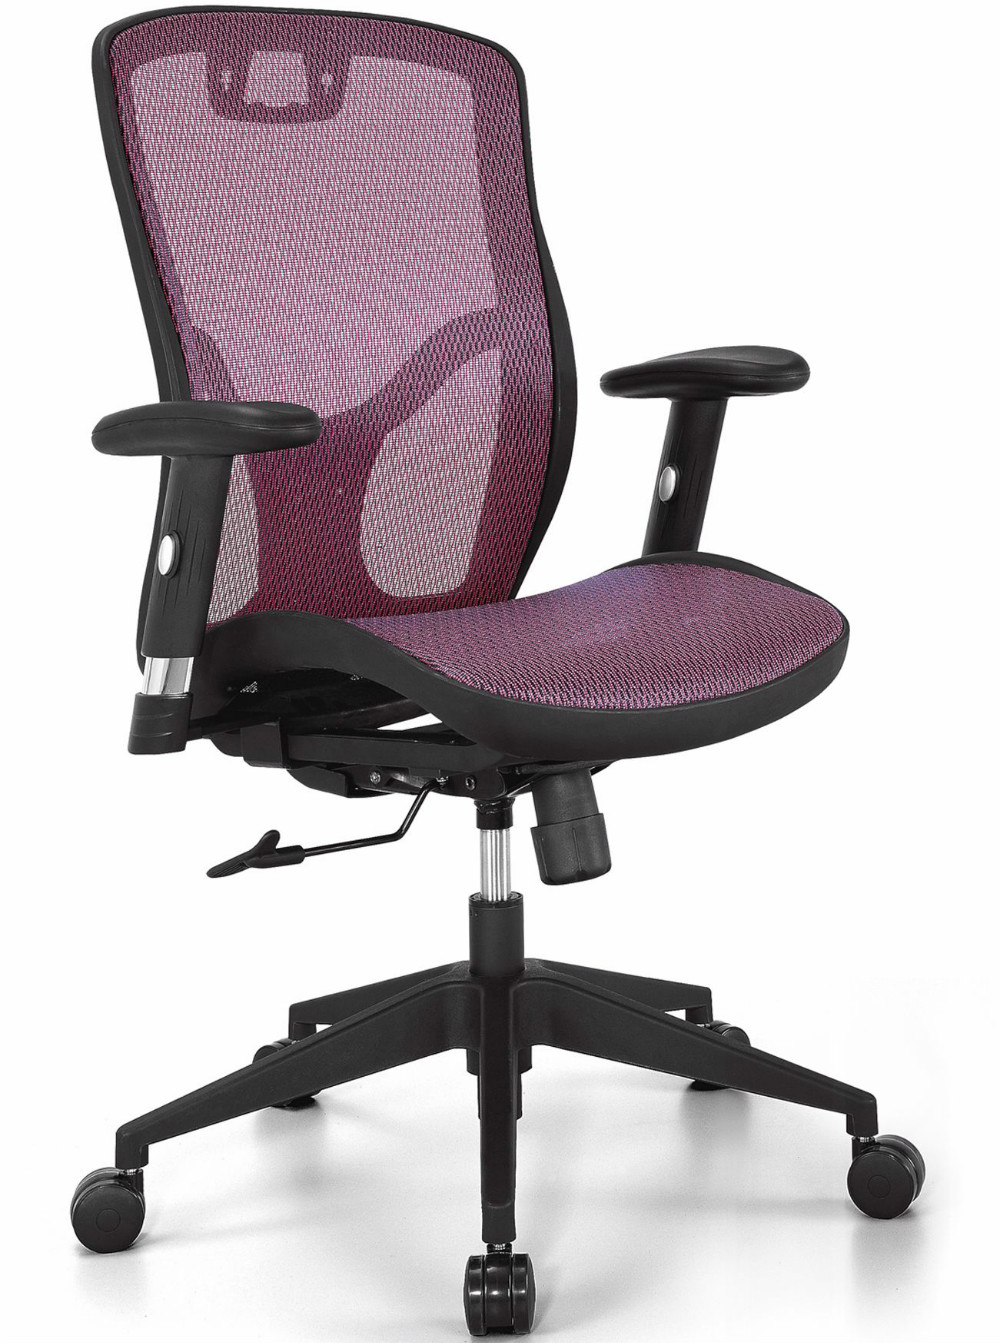 chair conference chair buy cheap swivel office computer chair